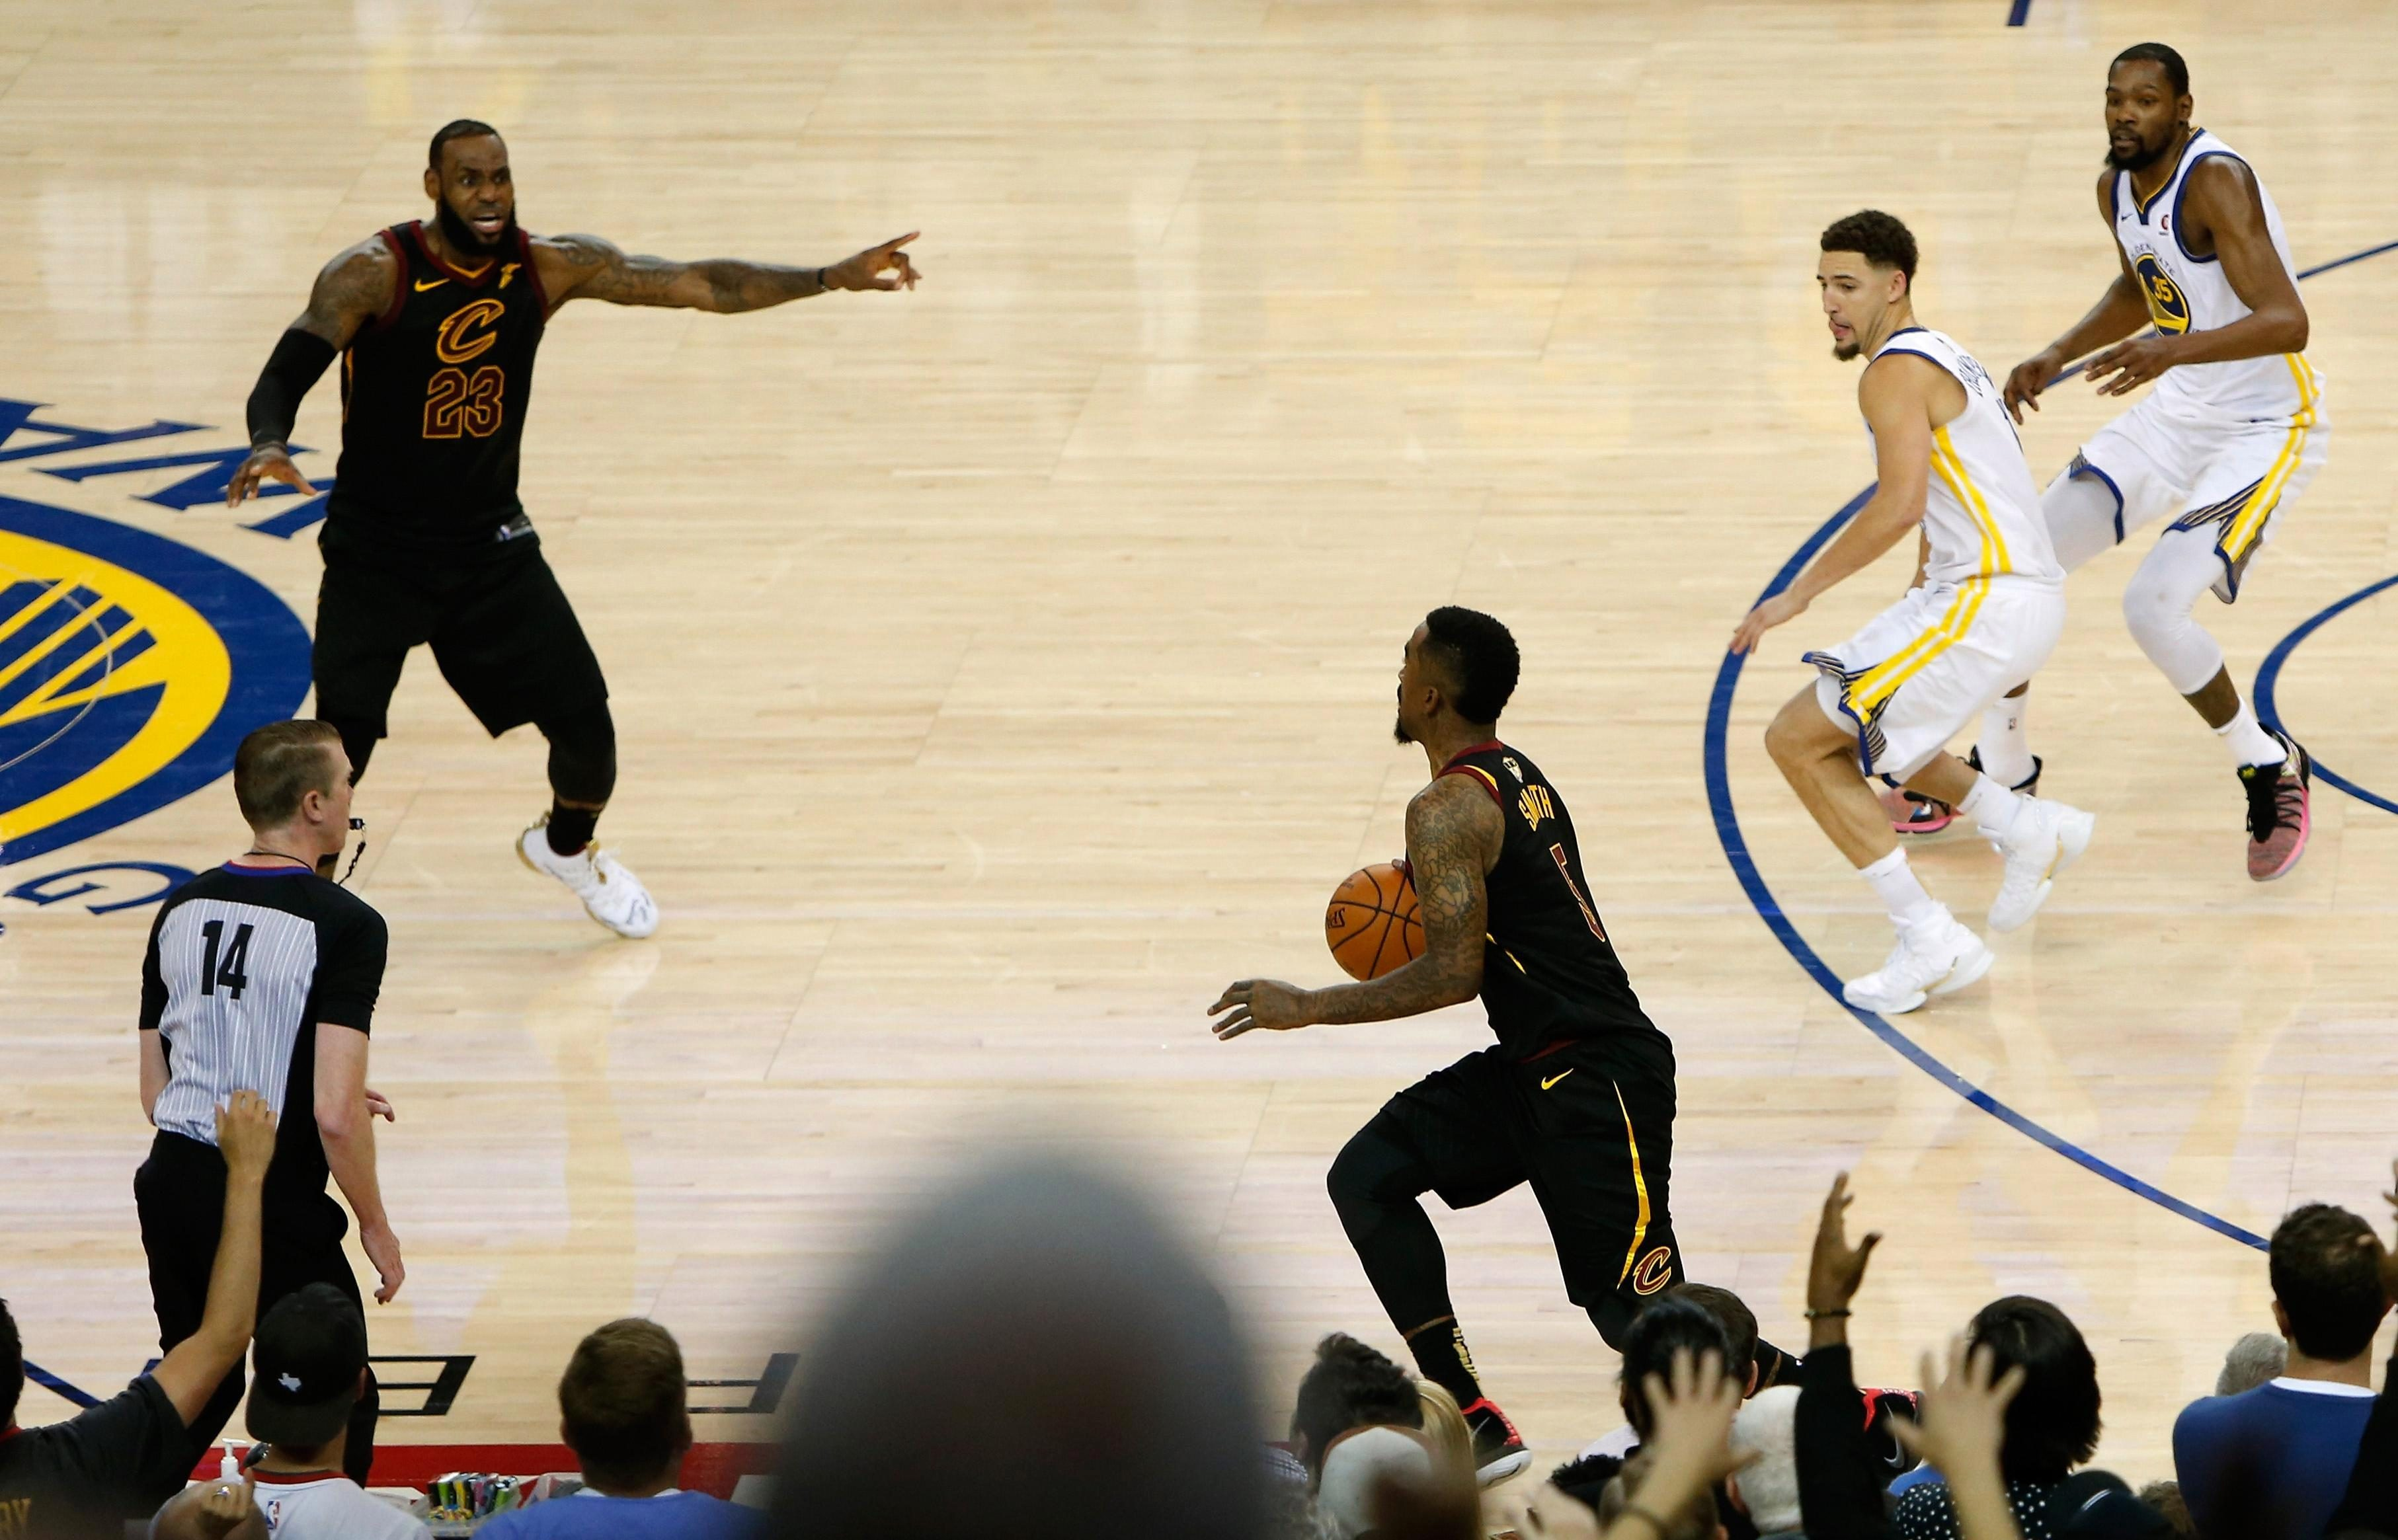 JR Smith had the chance to win the game with the score level - but dribbled AWAY from the basket and ran down the clock